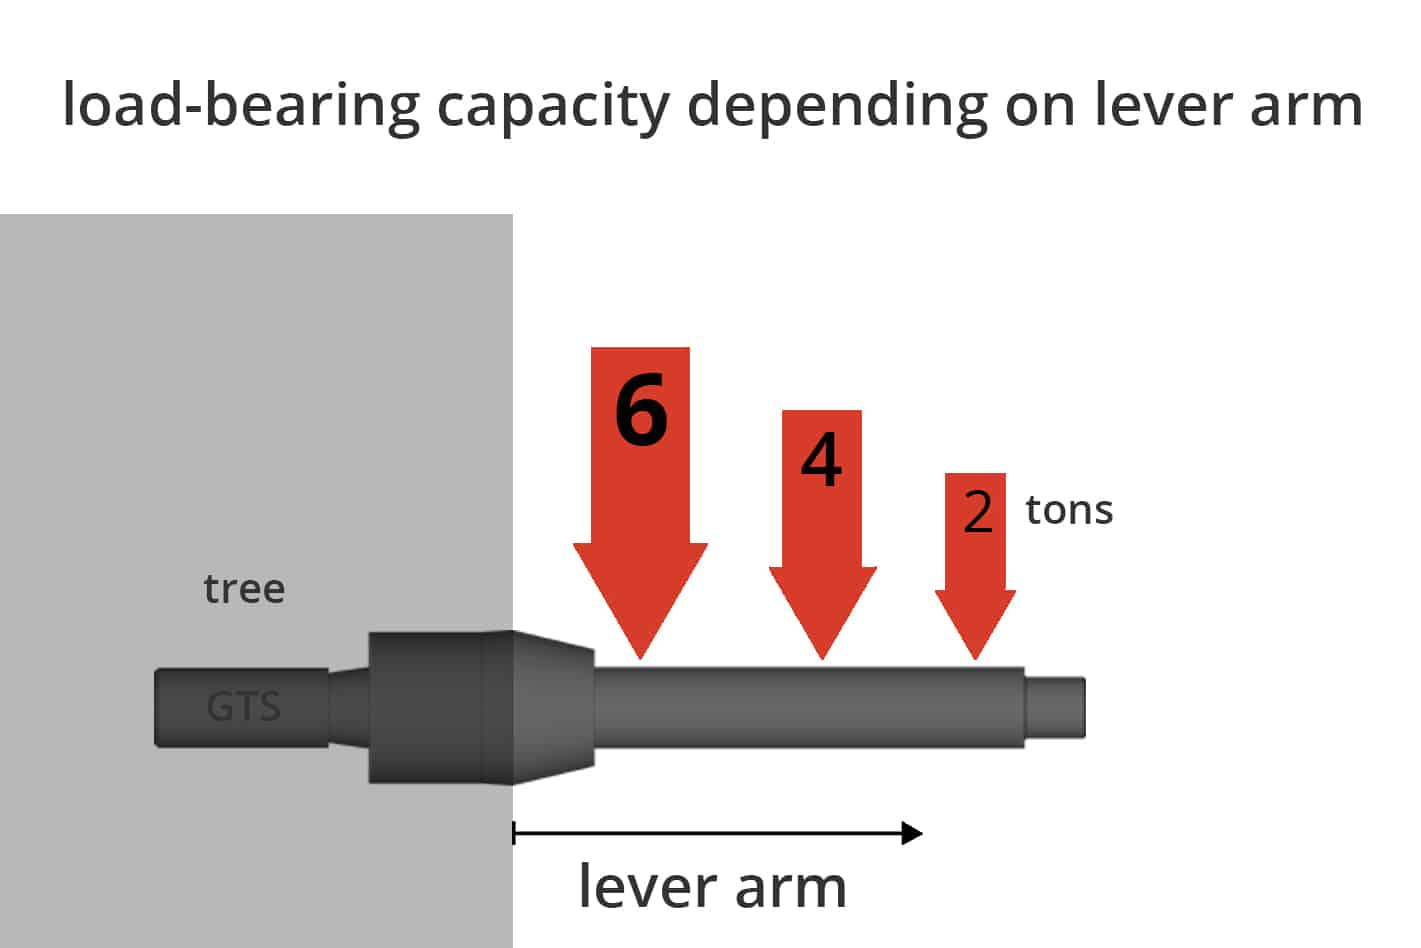 how much weight can the GTS screw lever-arm bear